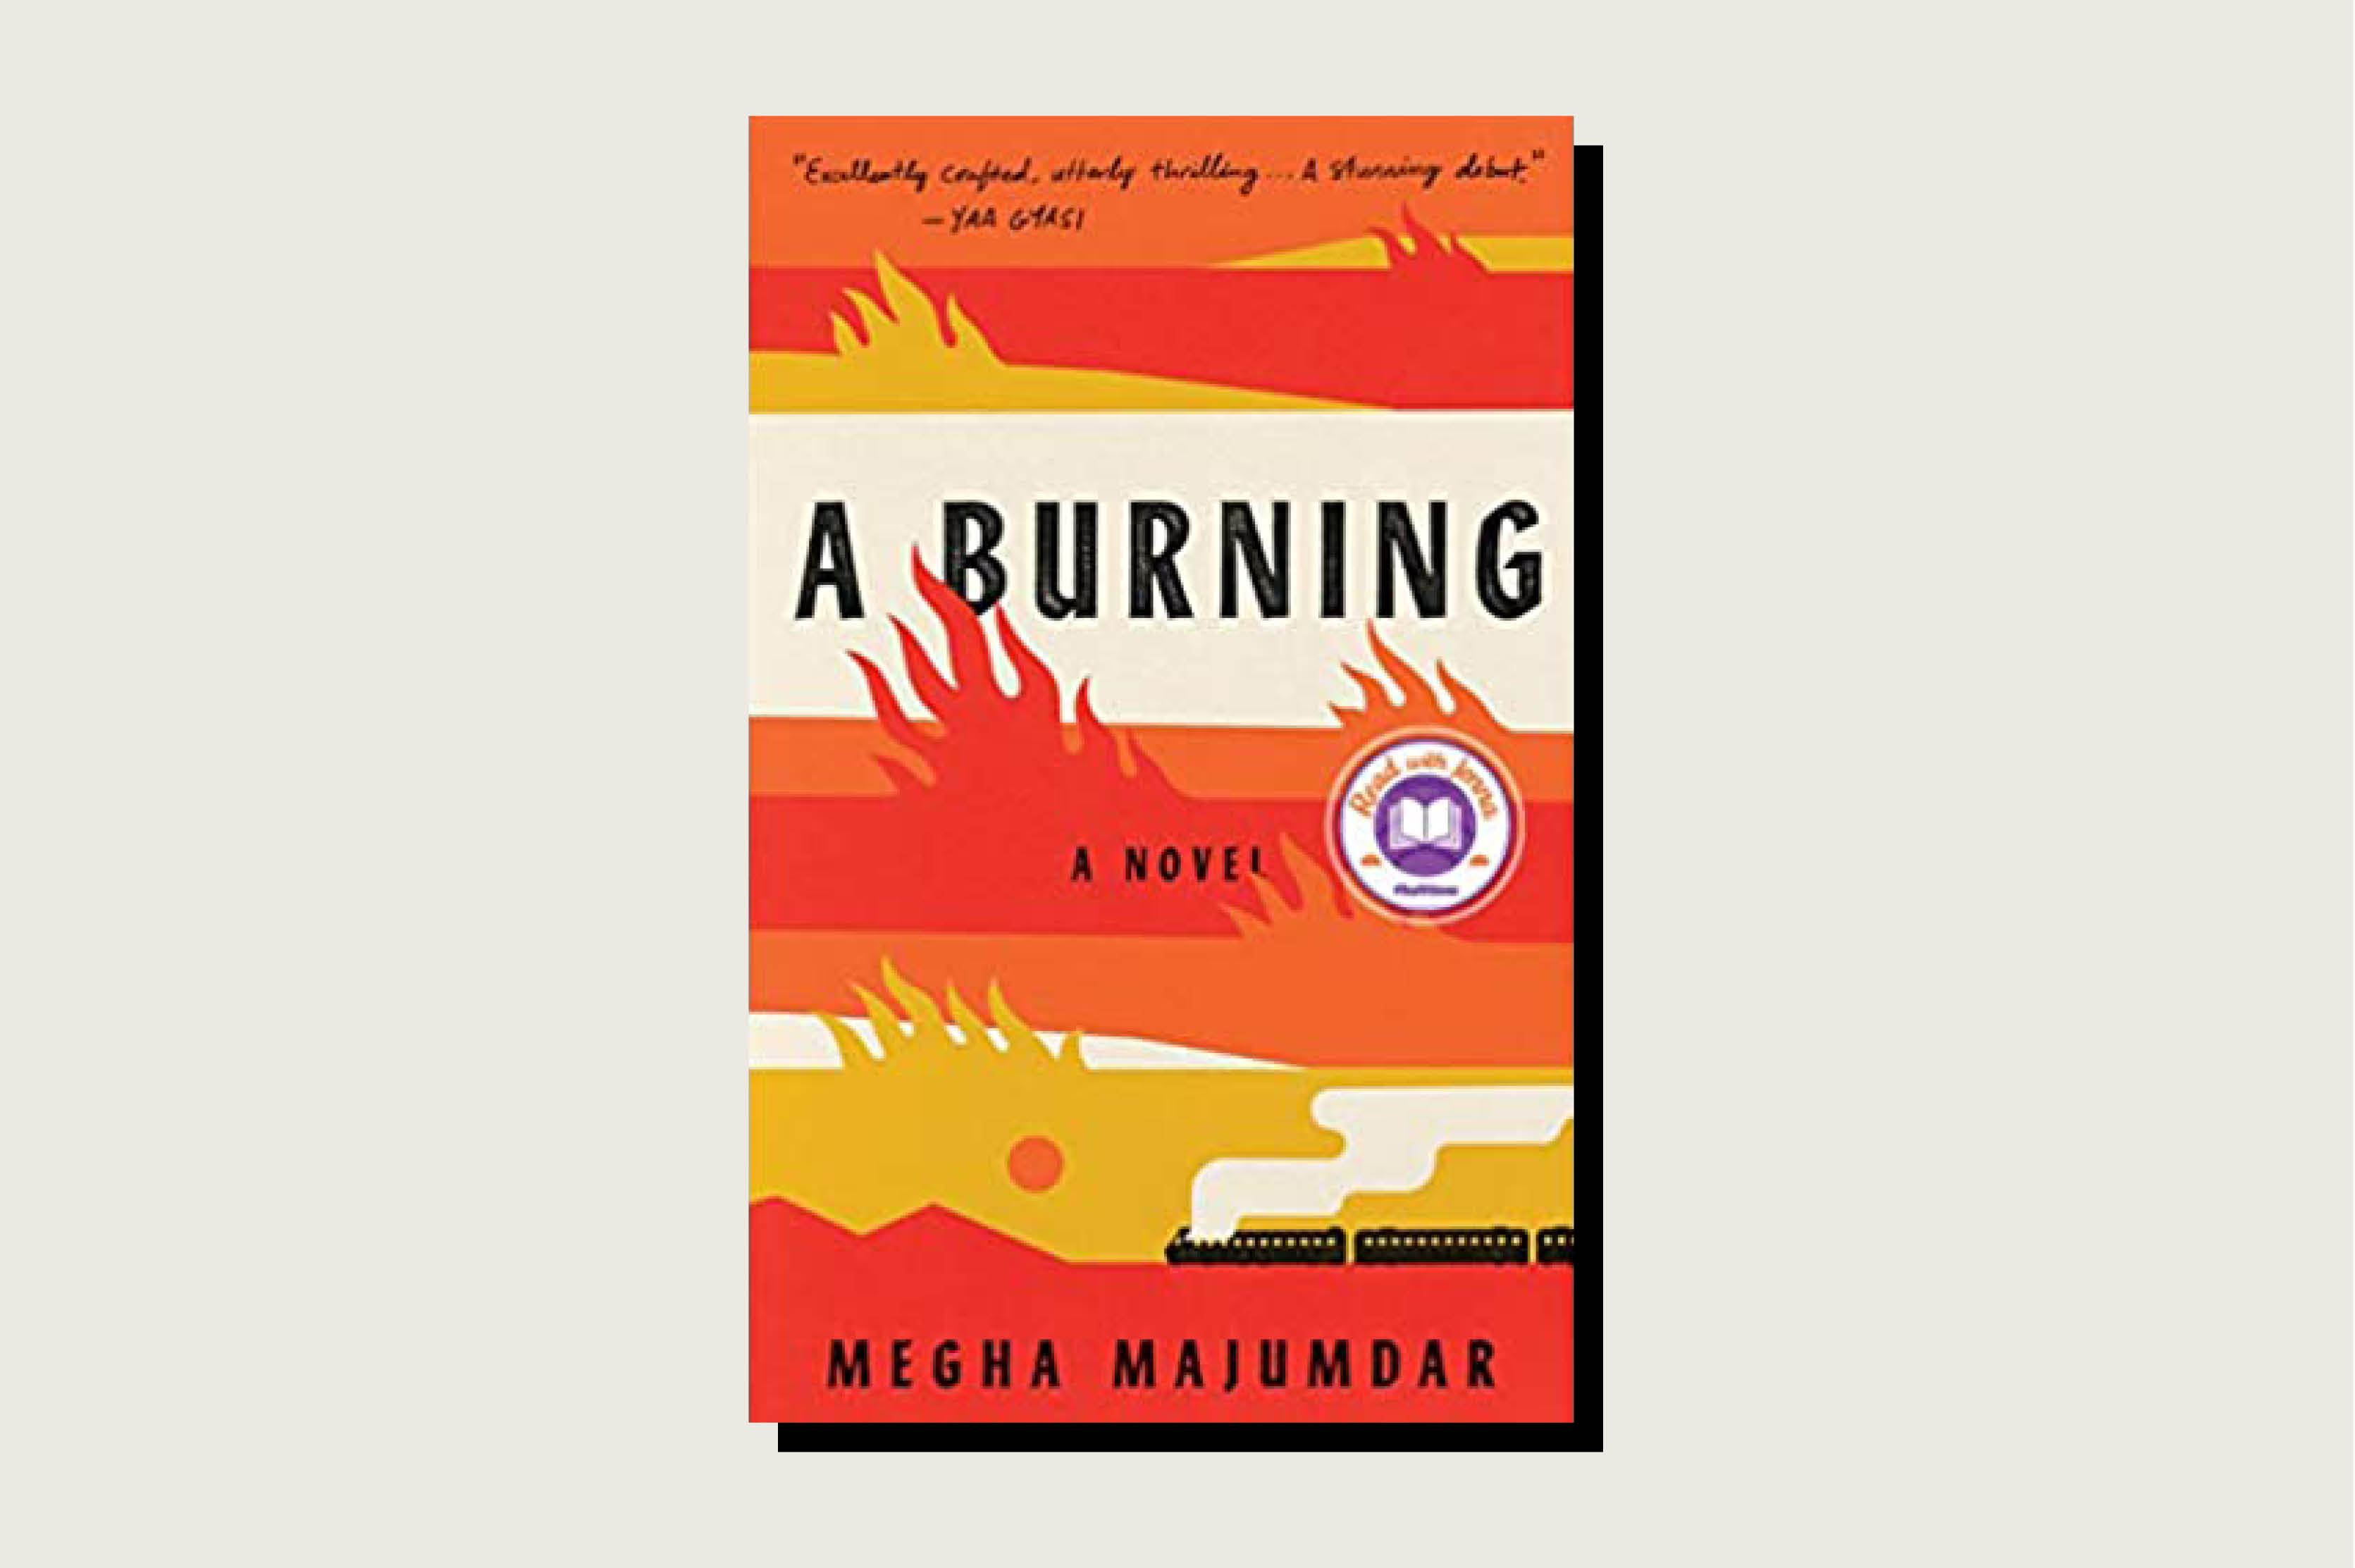 A Burning, Megha Majumdar, Knopf, 304 pp., .95, June 2020